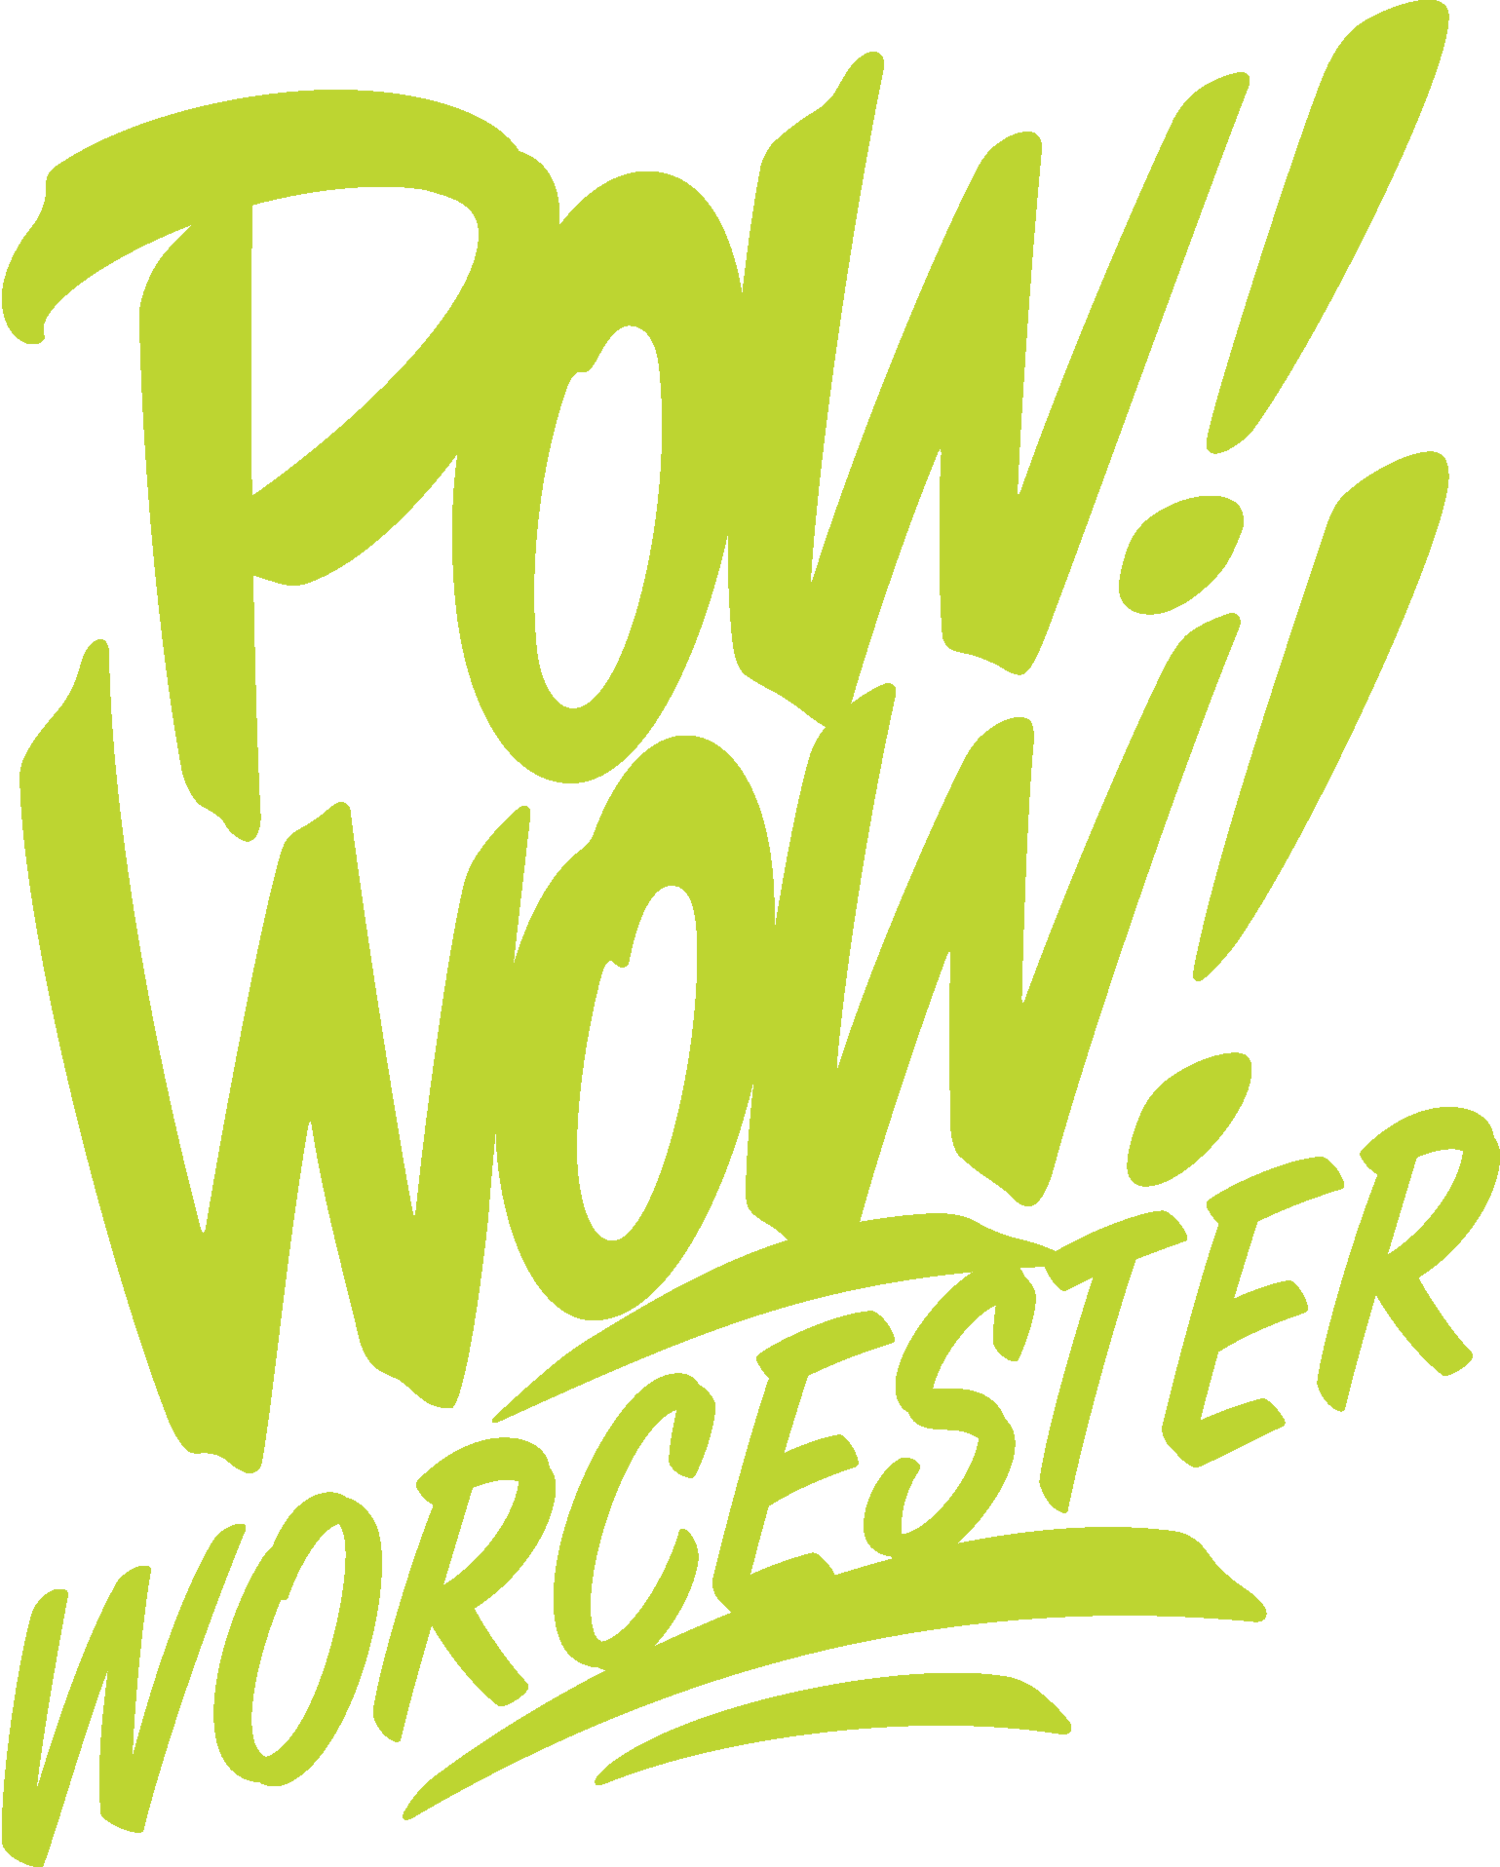 POW! WOW! WORCESTER: PAST, PRESENT AND FUTURE